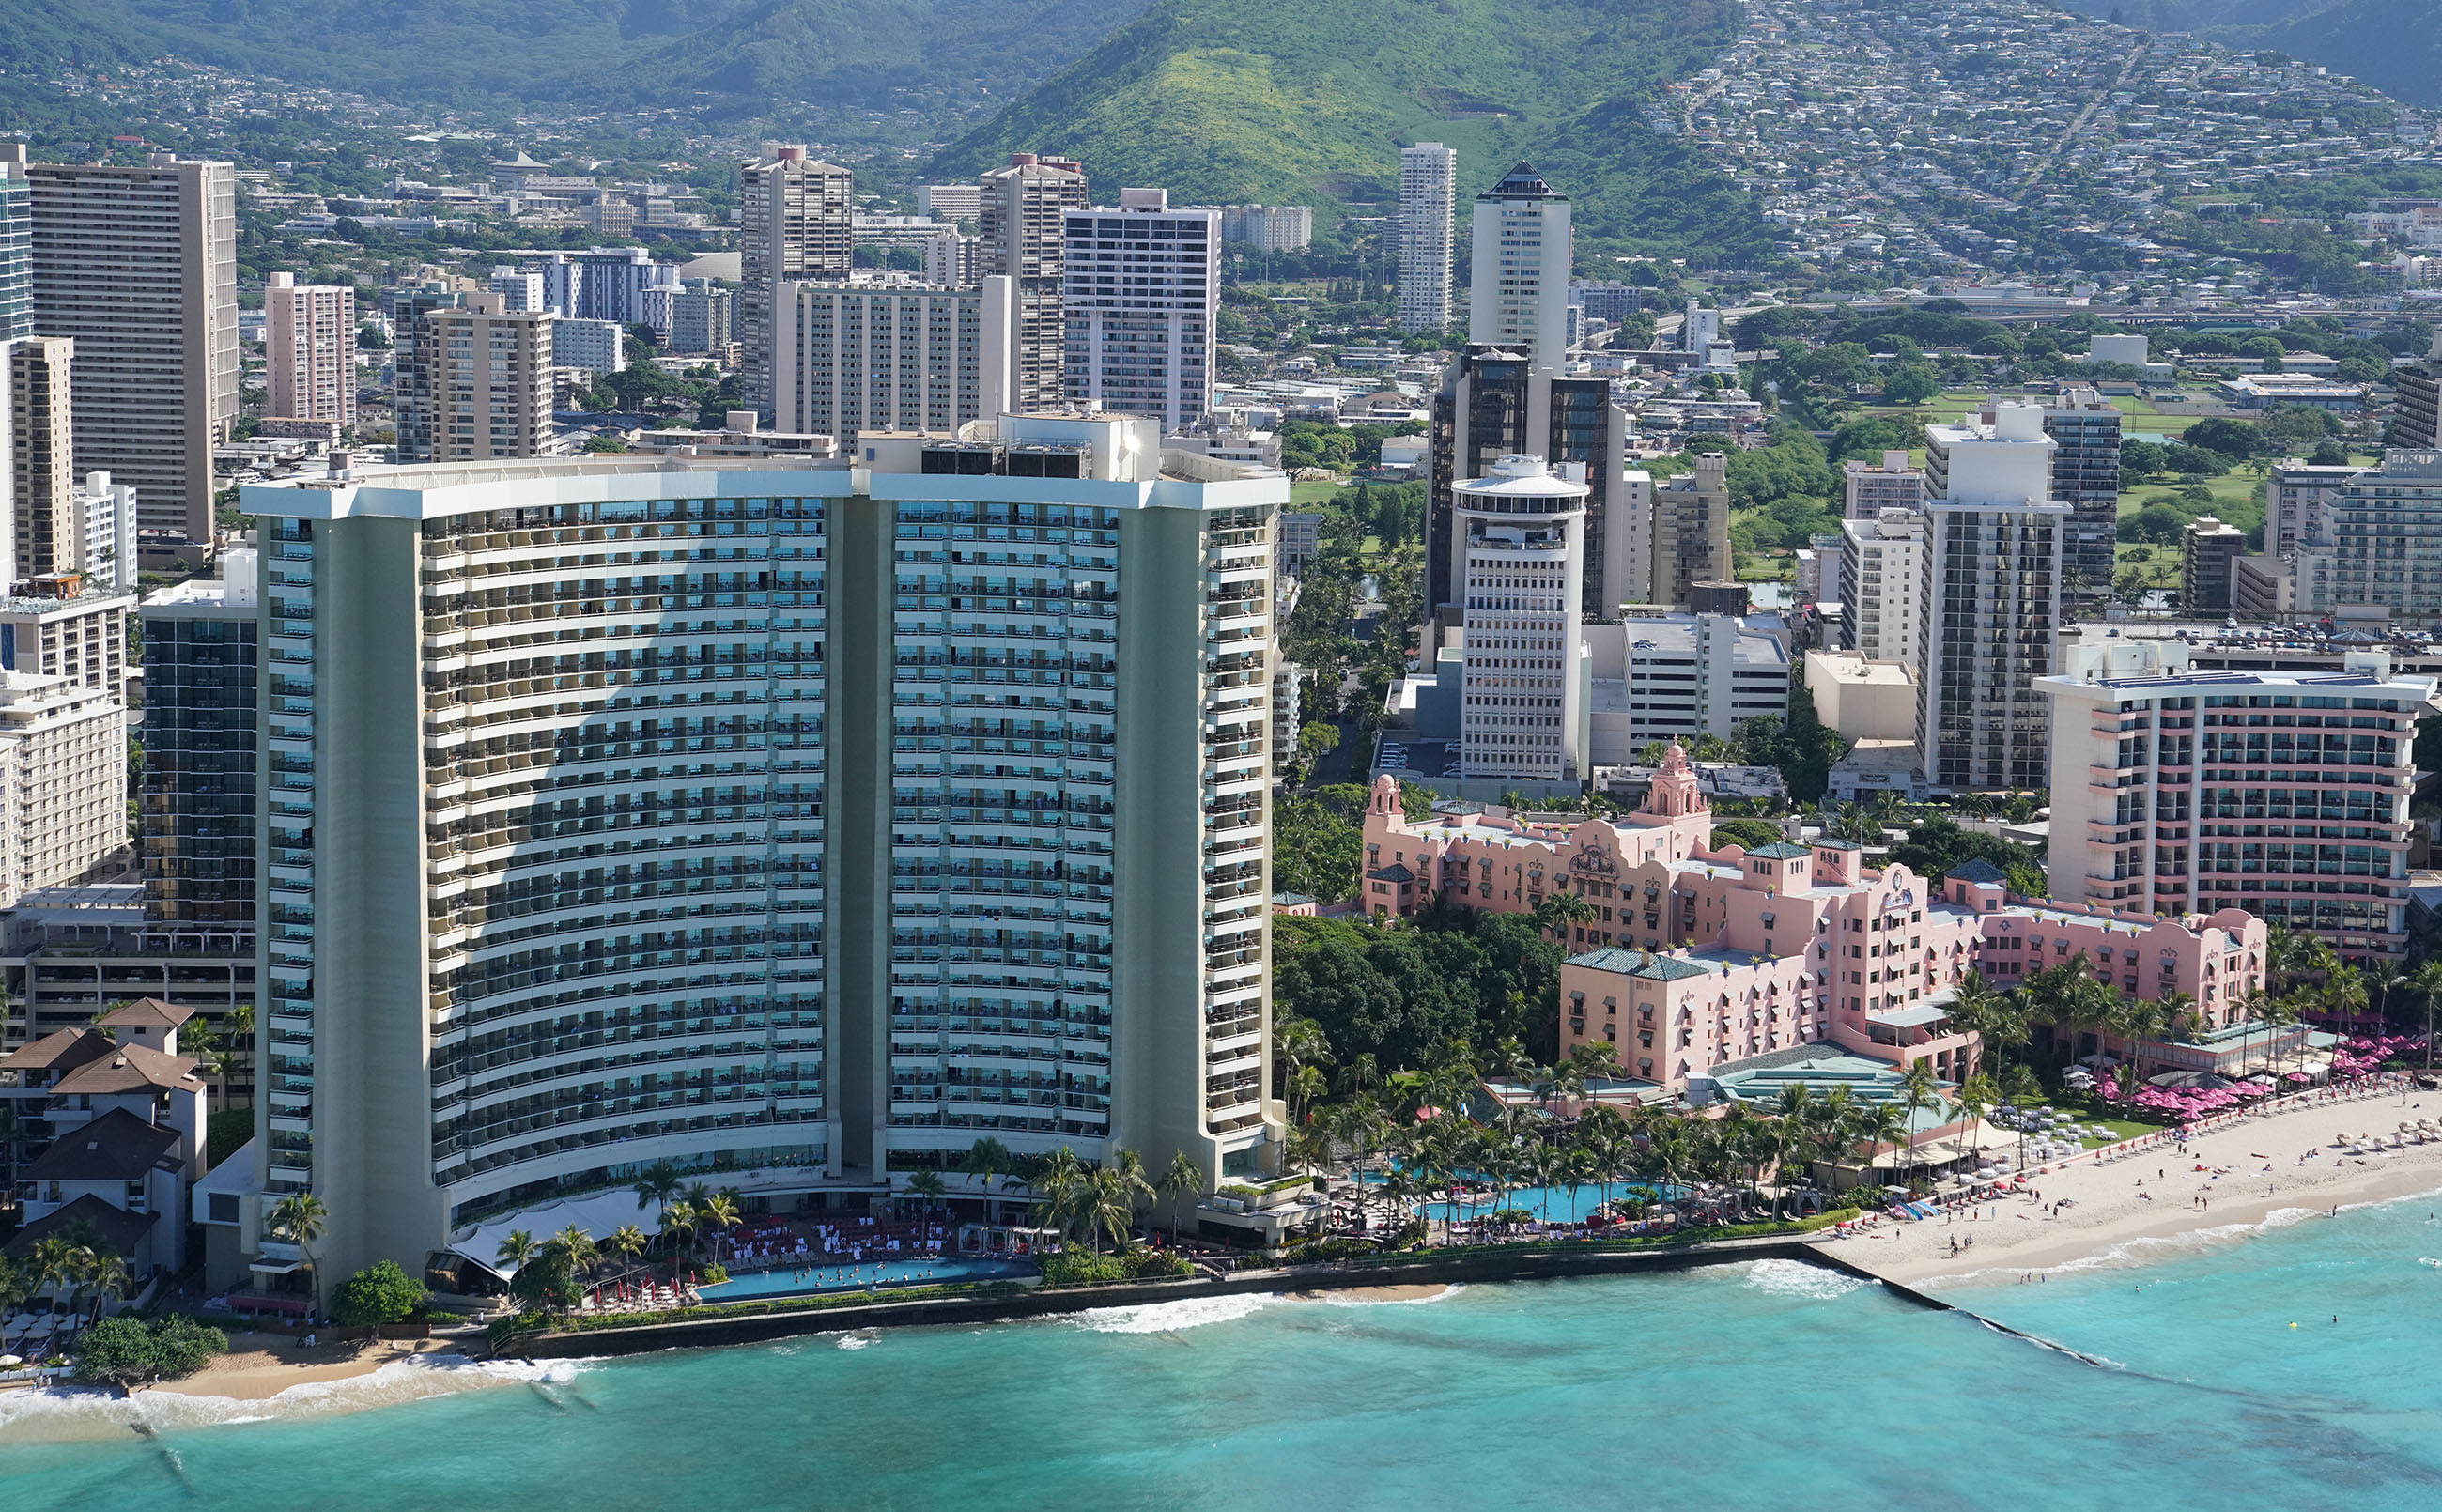 Waikiki Aerial Sheraton and Royal Hawaiian Hotel with Waikiki Beach 0355.